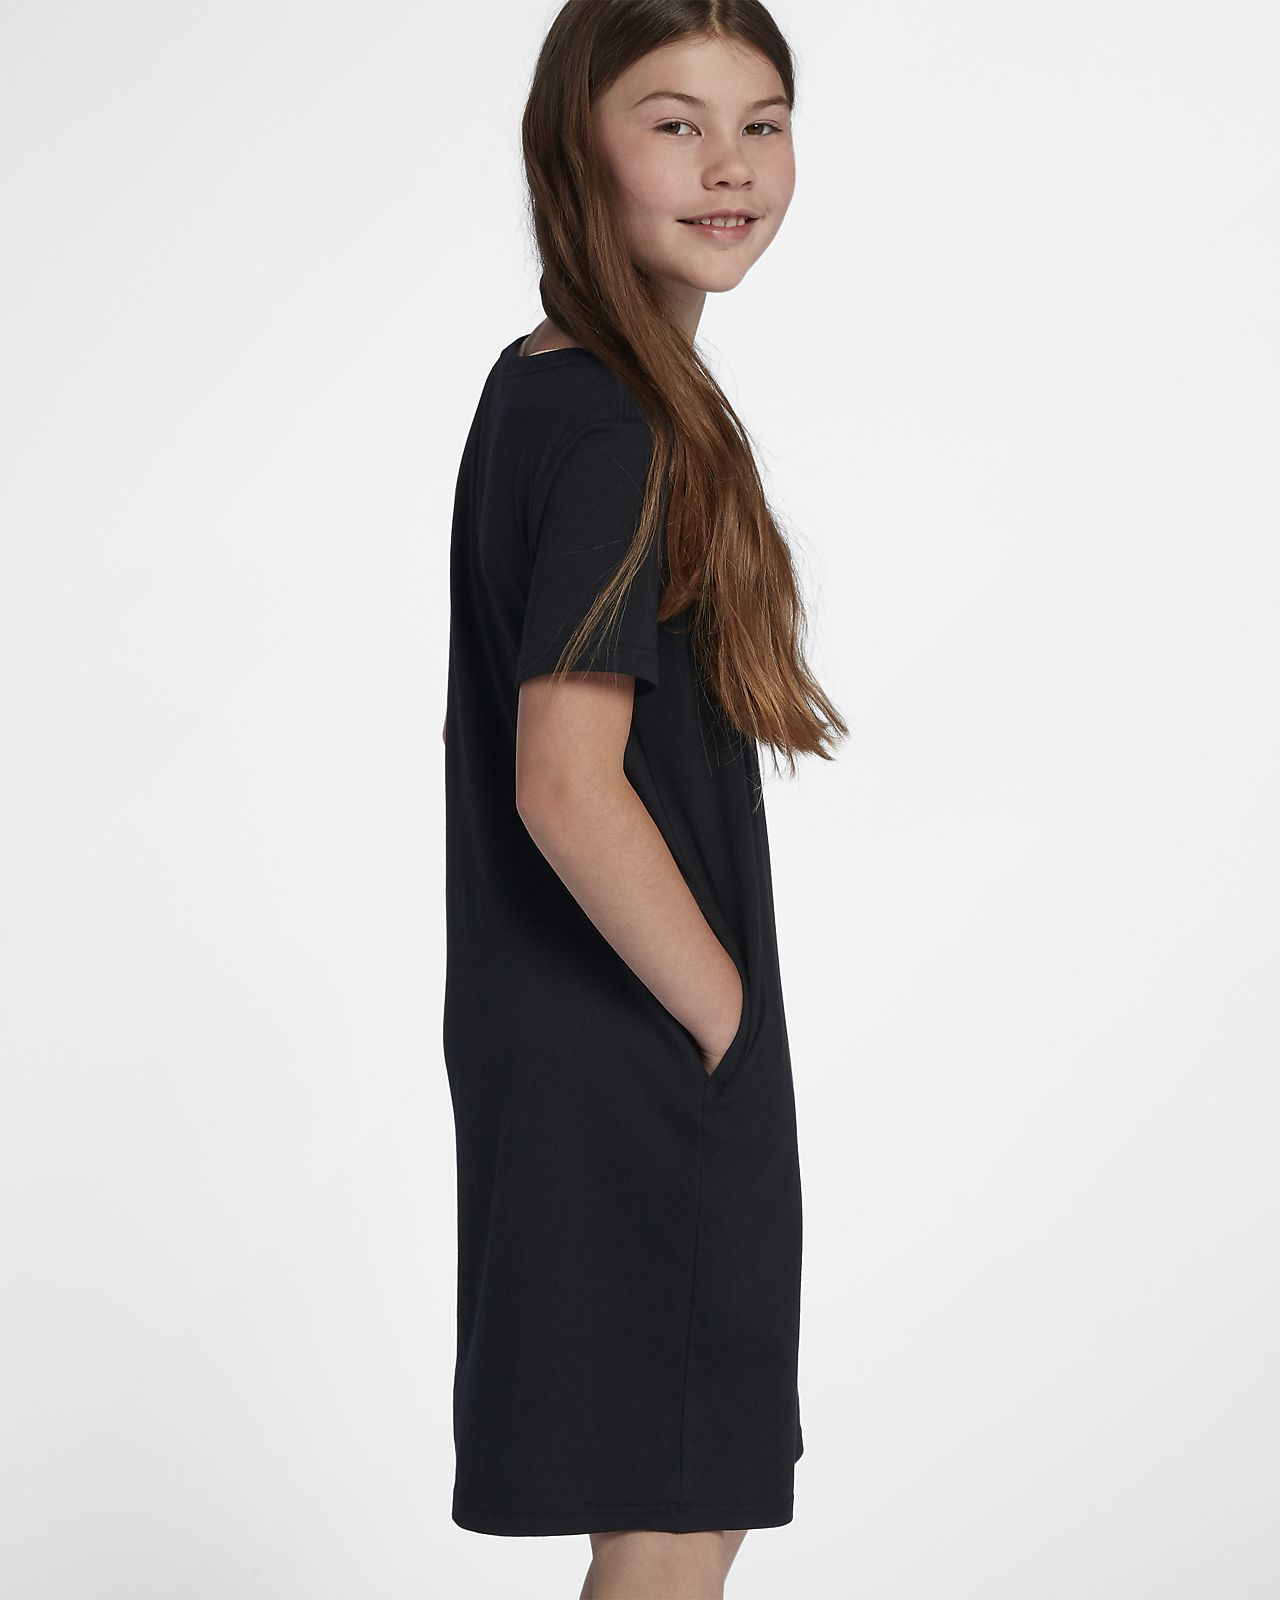 Nike Sportswear Older Kids  (Girls ) T-Shirt Dress. Nike.com SG 4a0628921